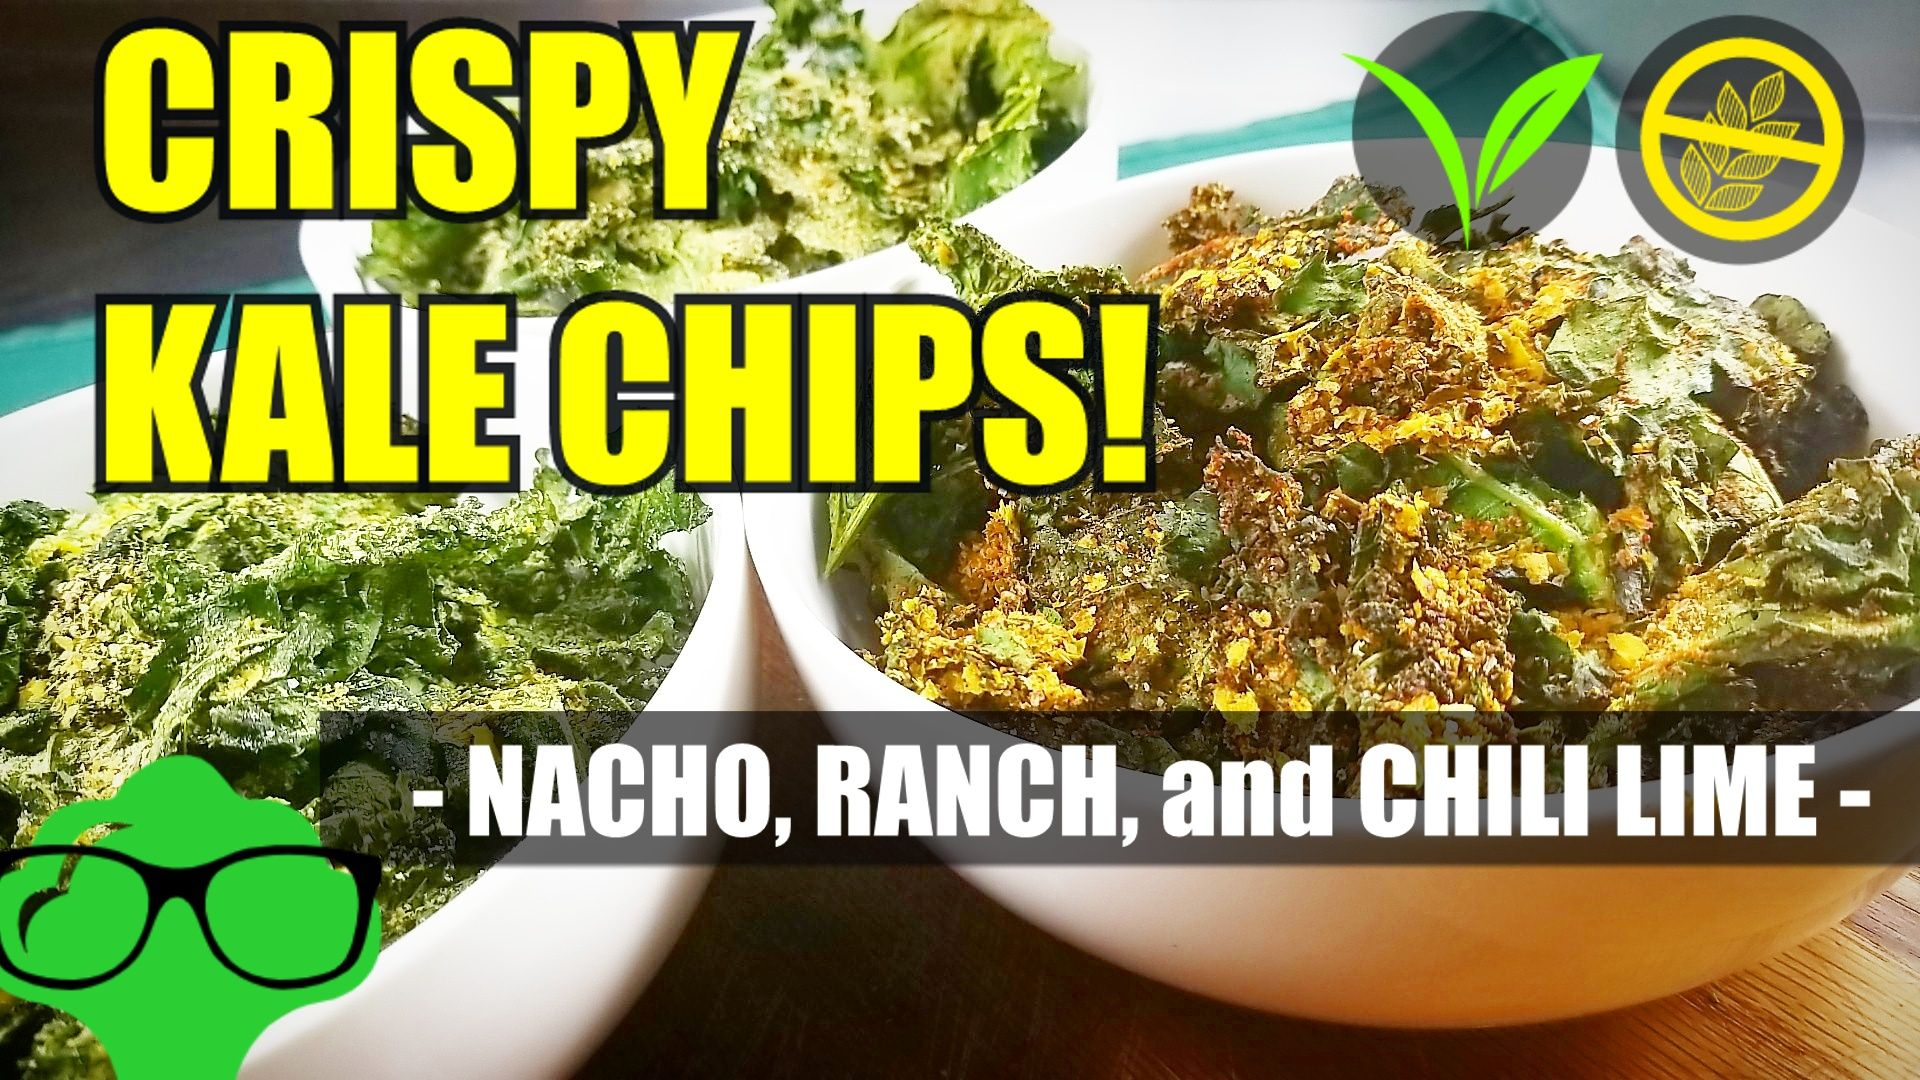 Flavored Crispy Kale Chips From The Oven In 2020 Kale Chips Chili Lime Kale Chip Recipes